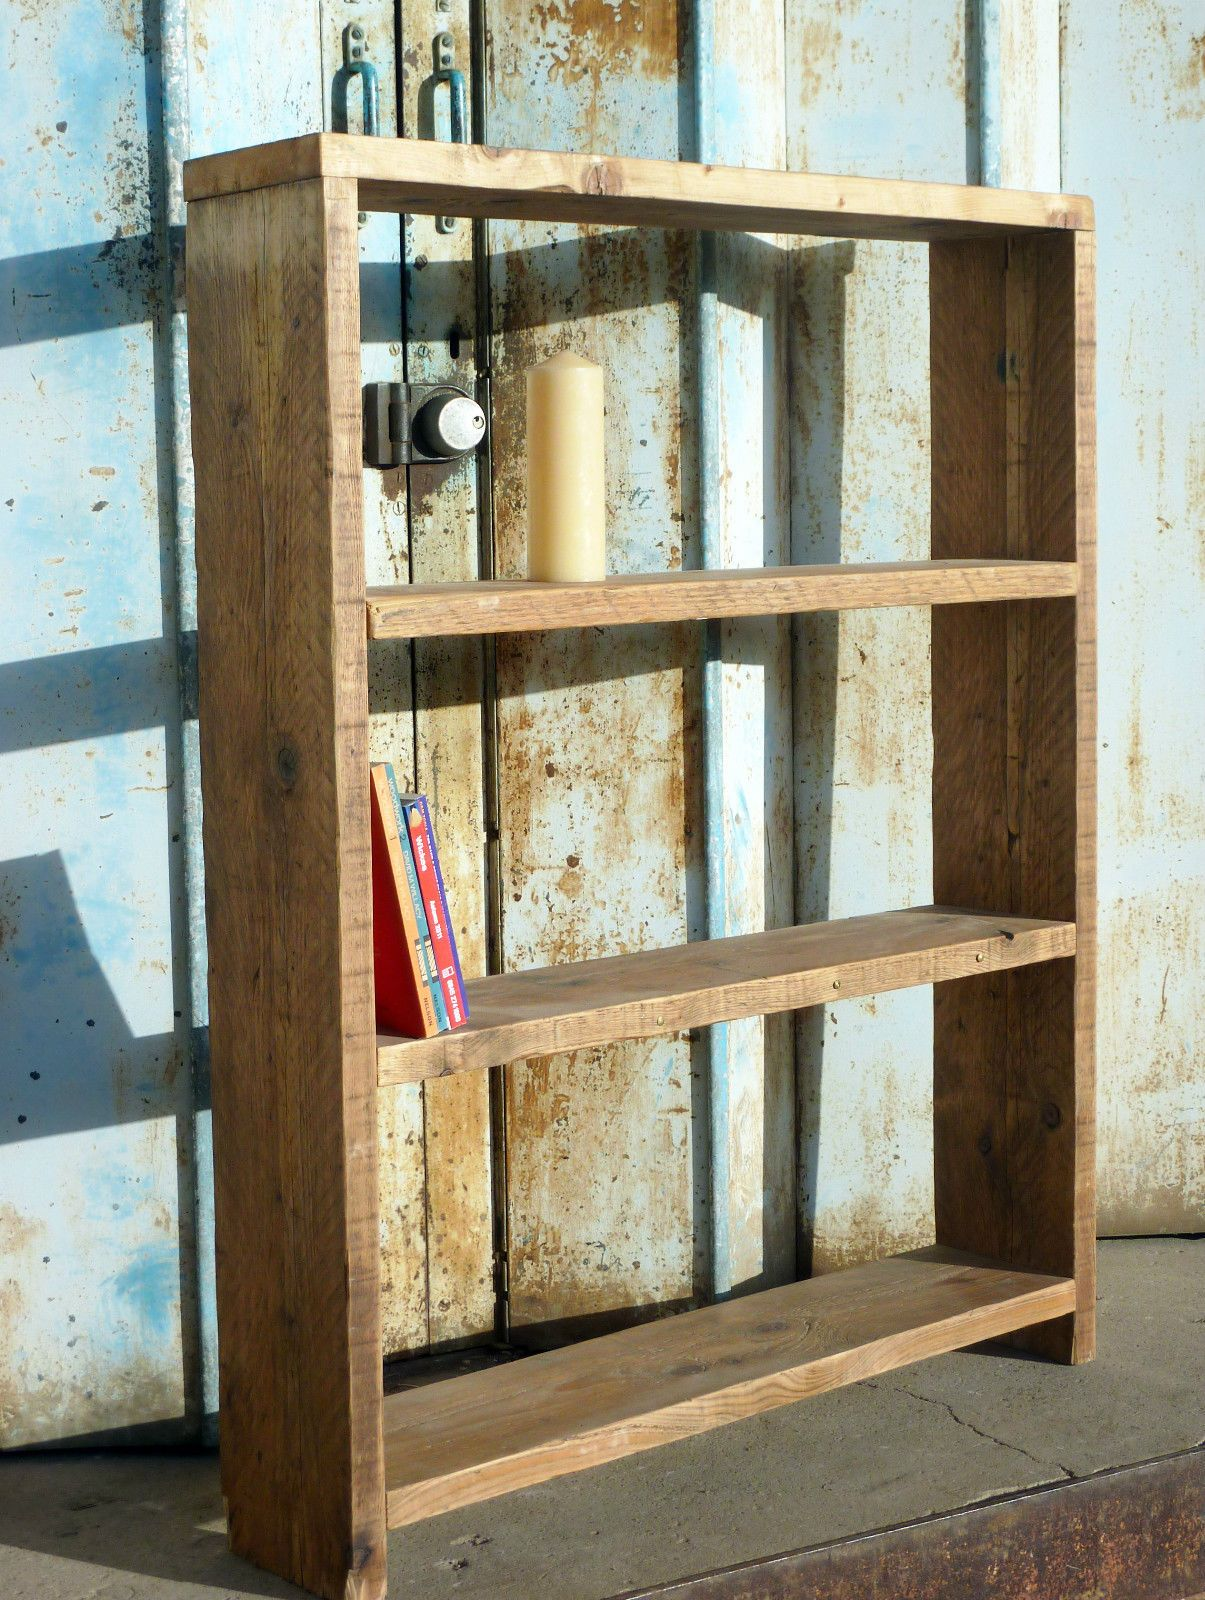 Bookshelf Made With Scaffolding Planks Home Ideas Shelves Rustic Shelves Scaffold Boards